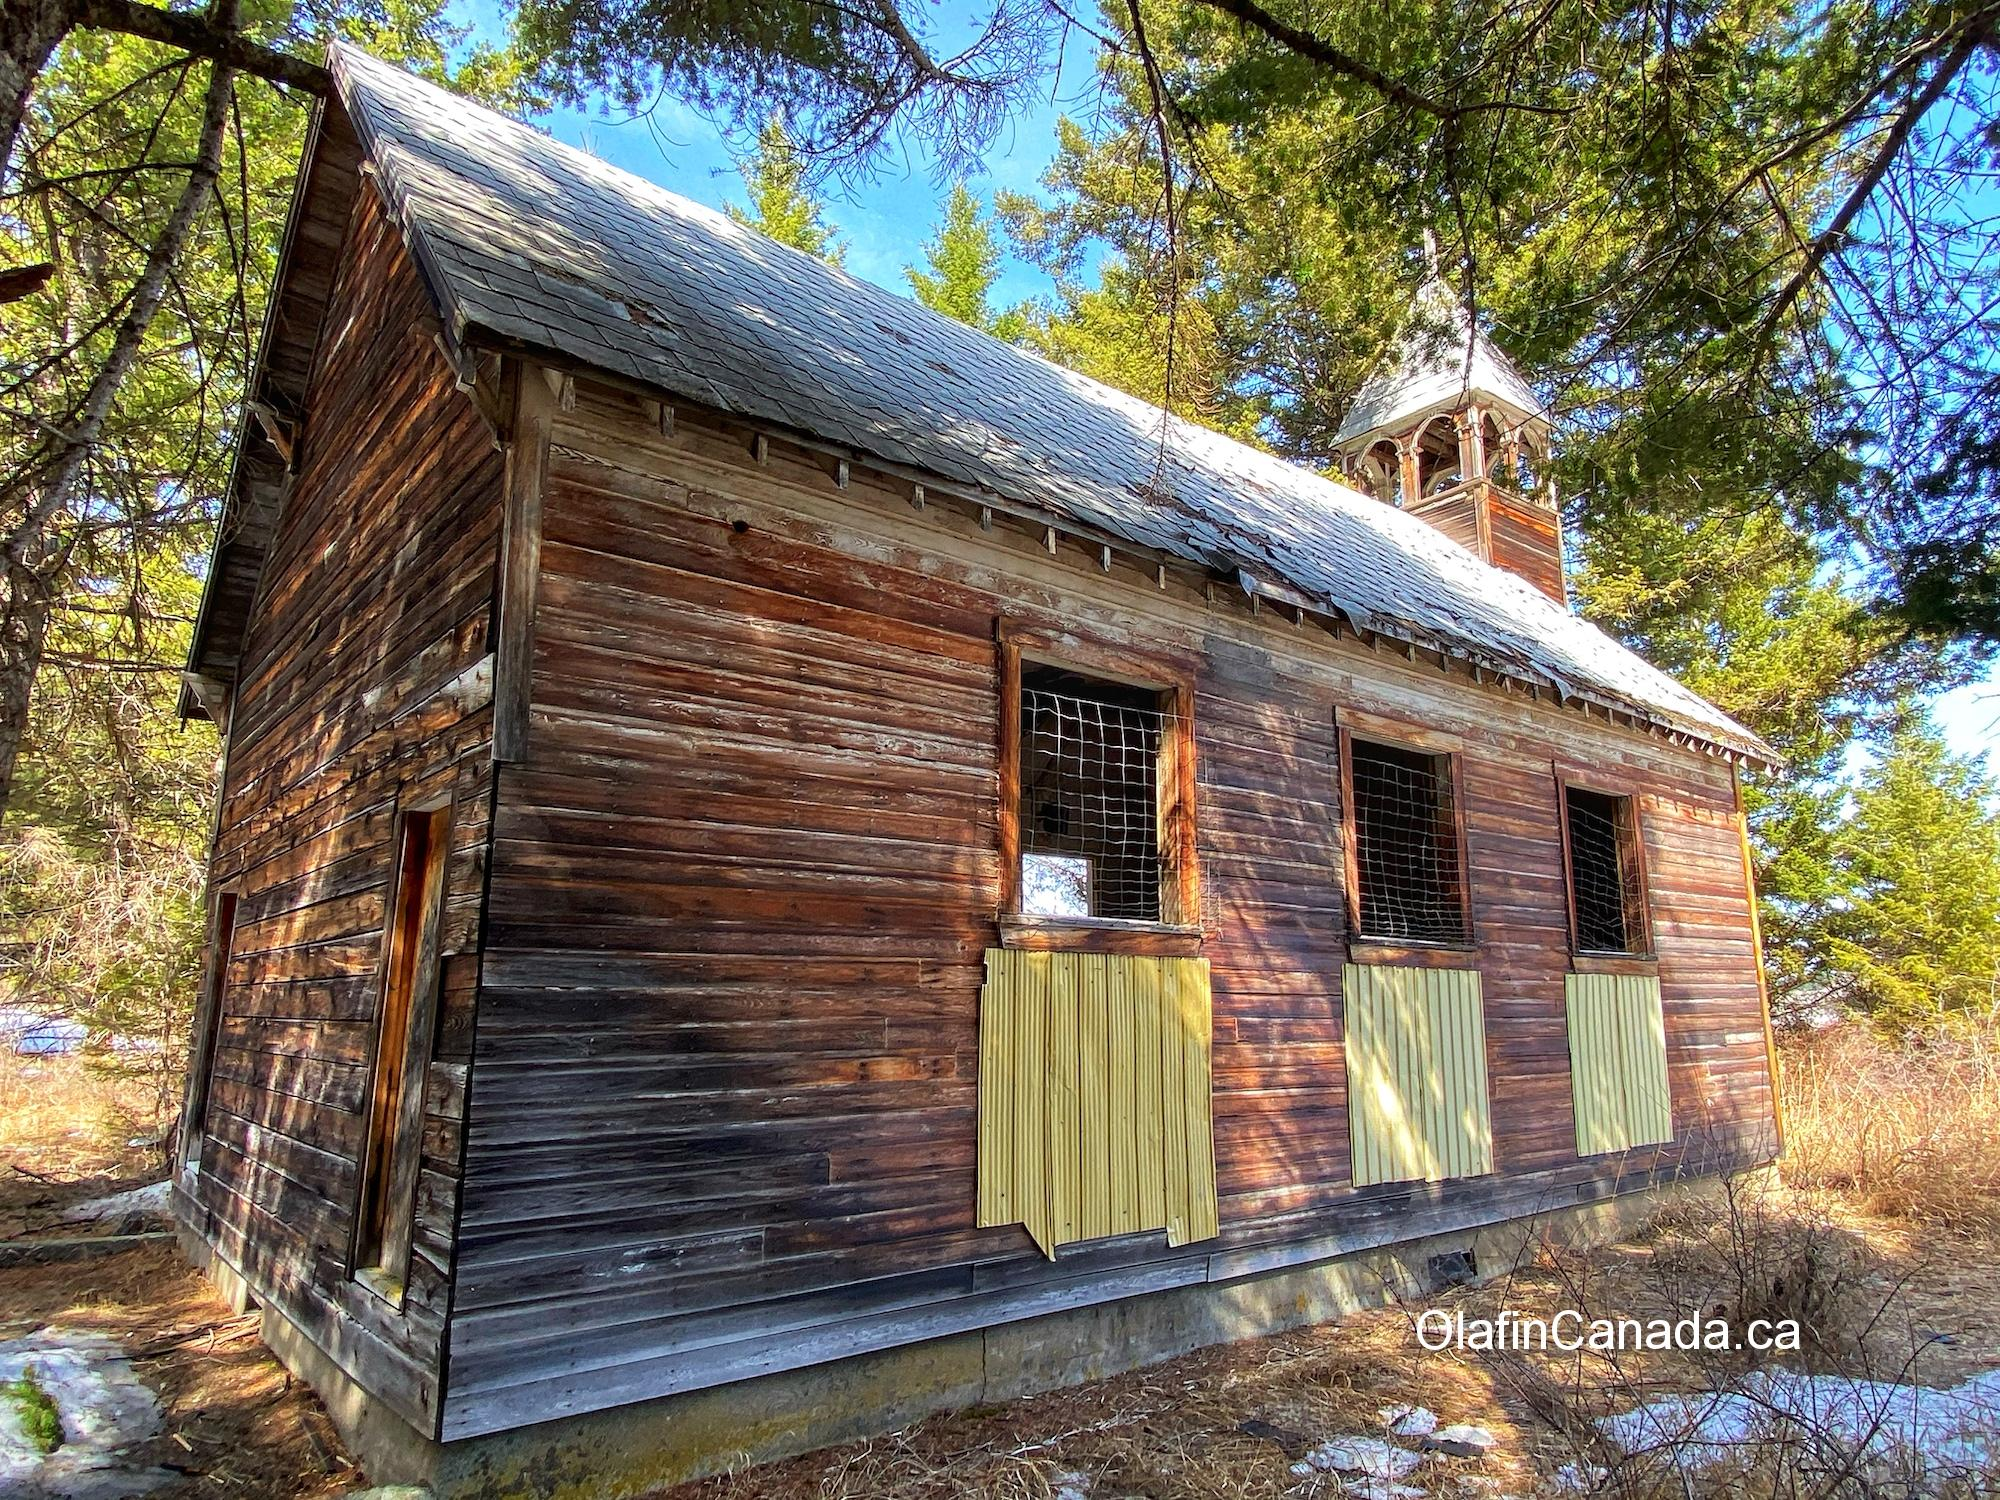 Sacred Heart Catholic Church in Bridesville (Rock Creek Area), built in 1930 by the Dumont family #olafincanada #britishcolumbia #discoverbc #abandonedbc #church